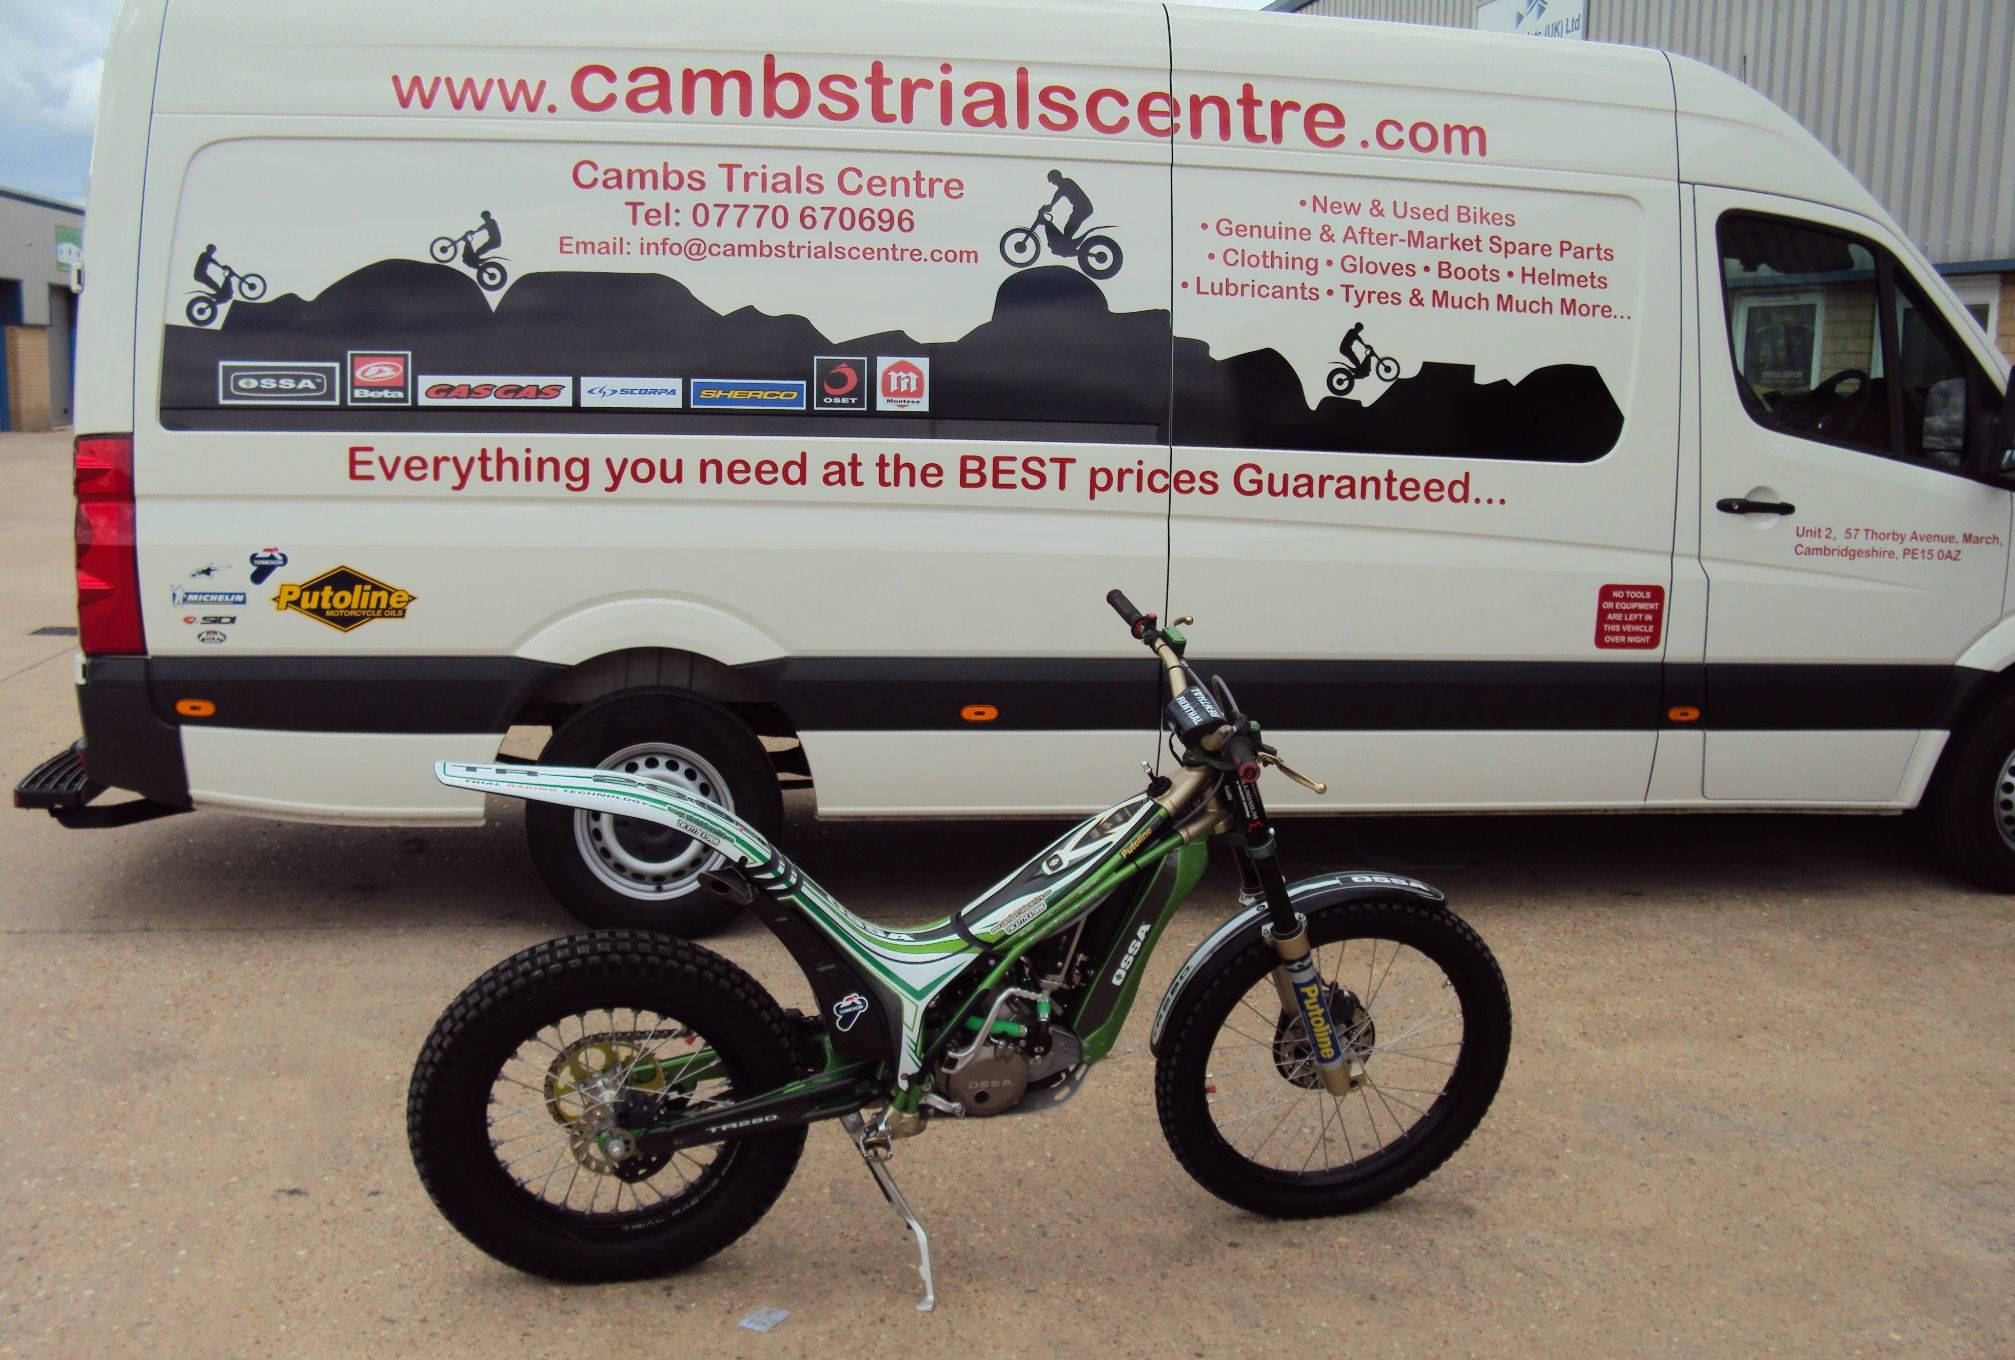 Cambs Trials Centre, Unit 7, 57 Thorby Avenue, March, Cambridgeshire, PE150AR, United Kingdom